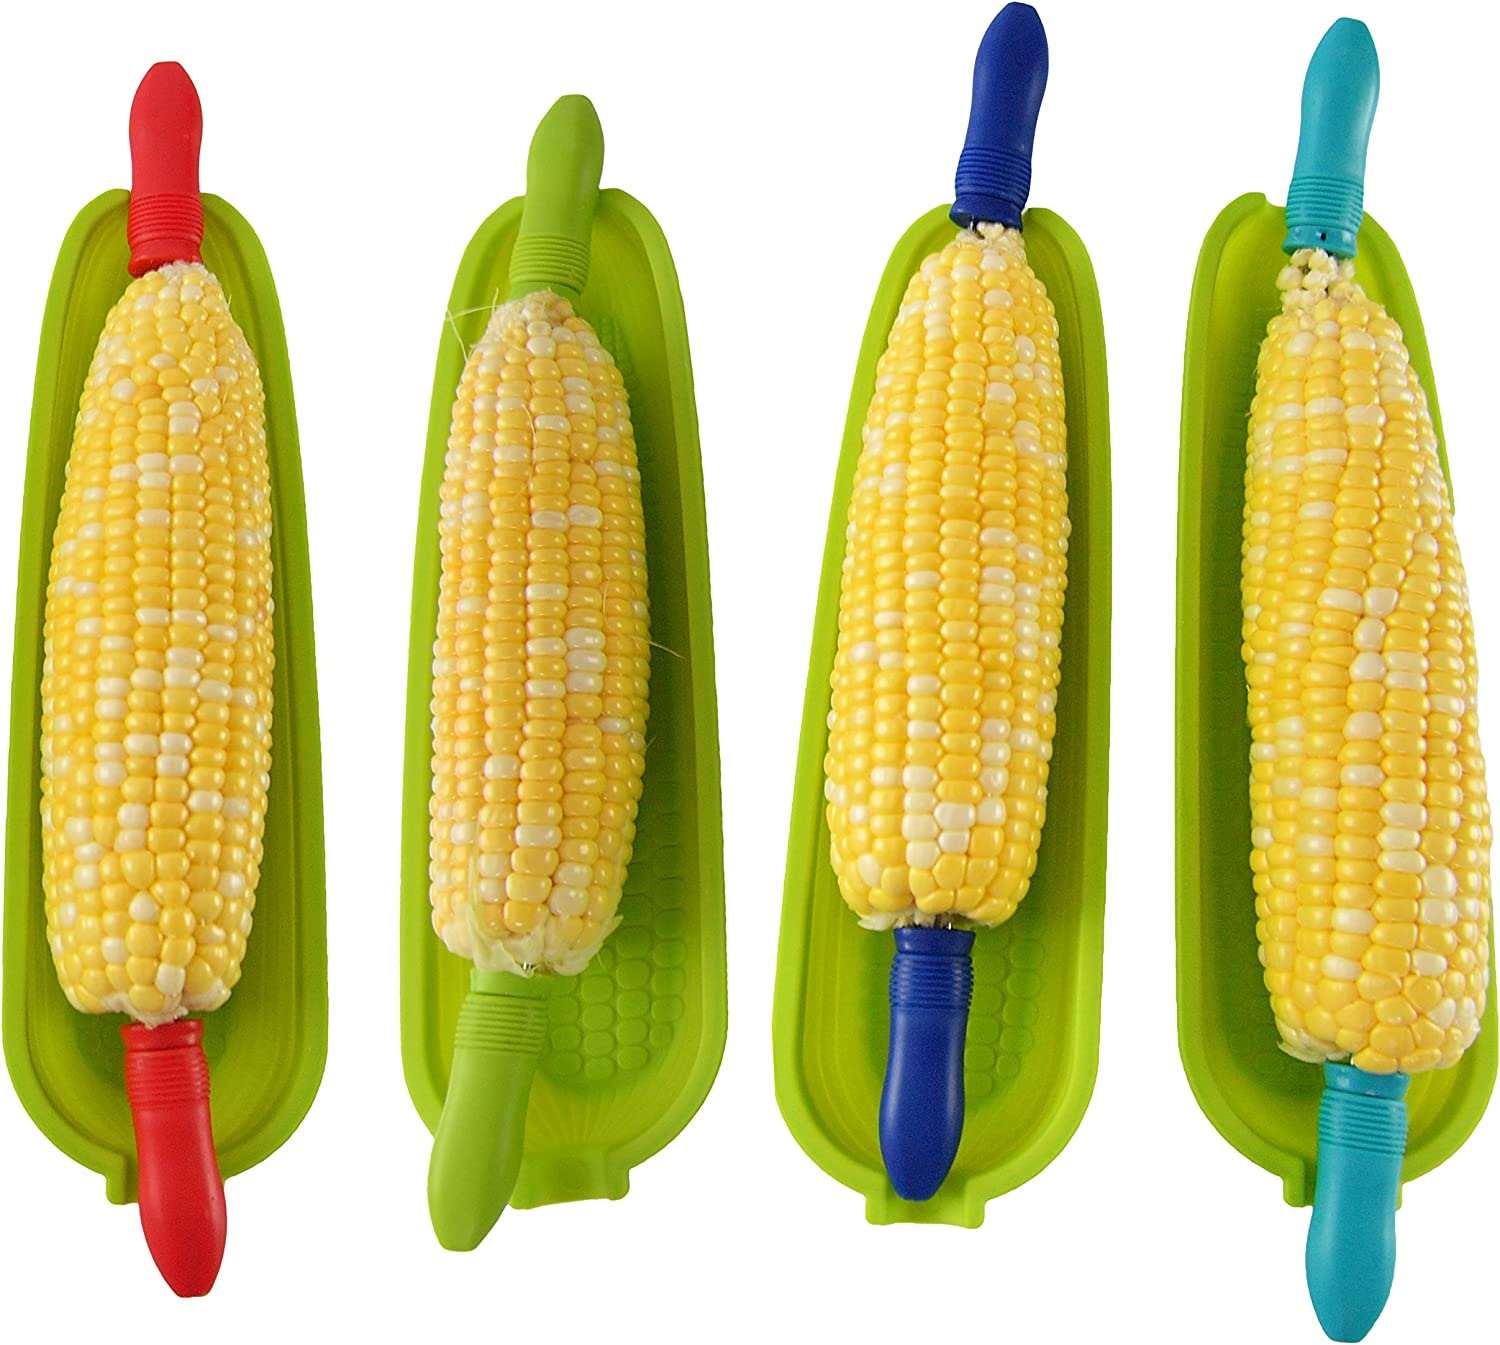 Home-X Corn Cob Holders with Dish, Cute Kitchen Gadgets, Fun BBQ Party Supplies